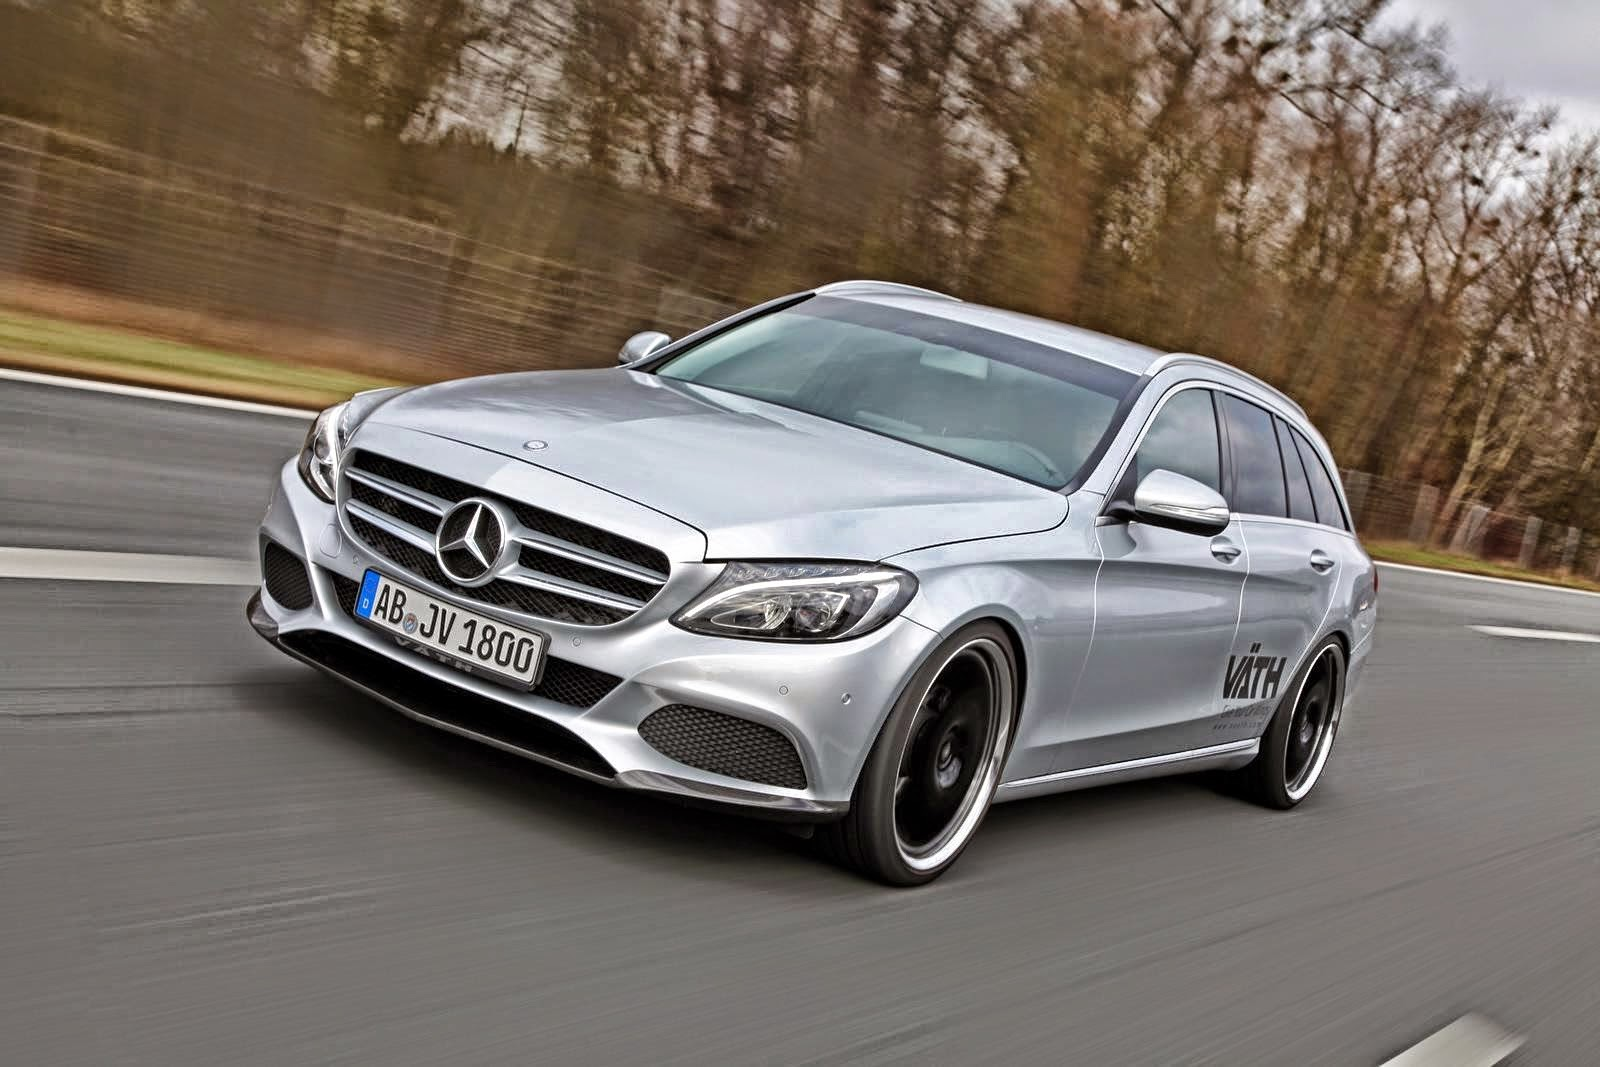 Tuning Cars Wallpapers Hd Mercedes Benz S205 C180 Estate By V 196 Th Benztuning